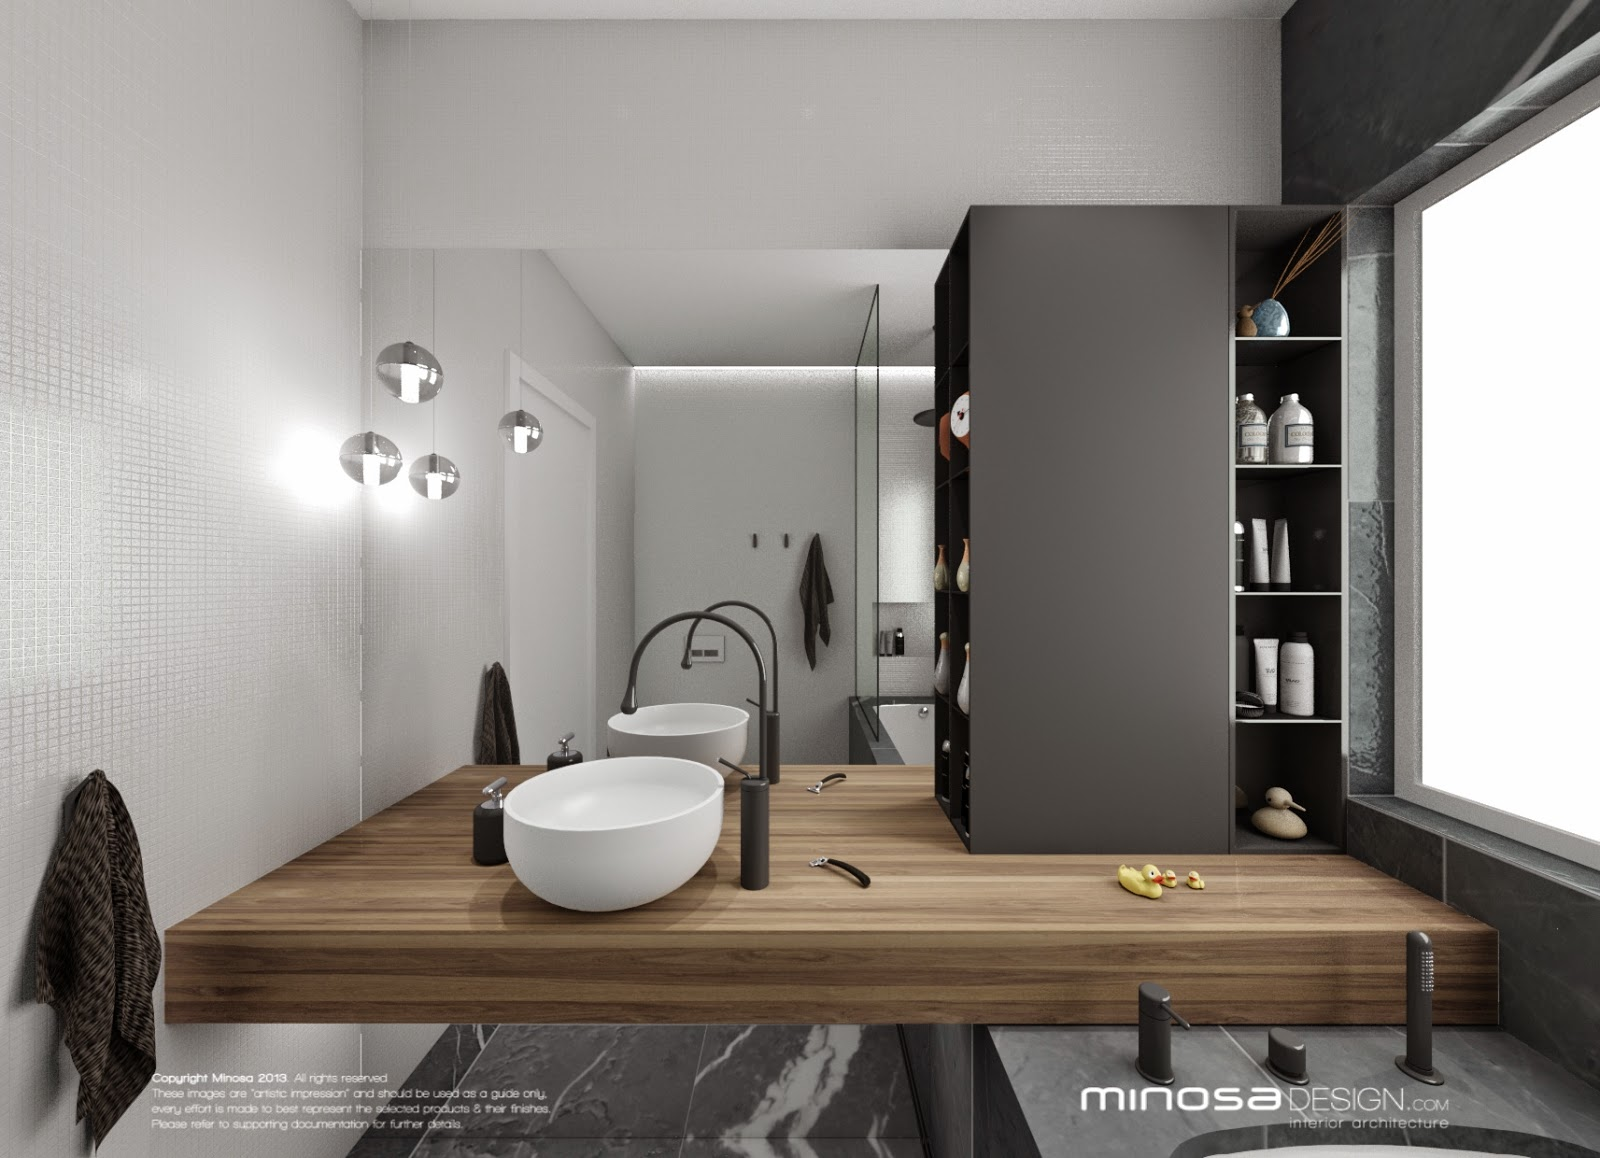 Minosa bathroom design small space feels large for Large bathroom designs pictures